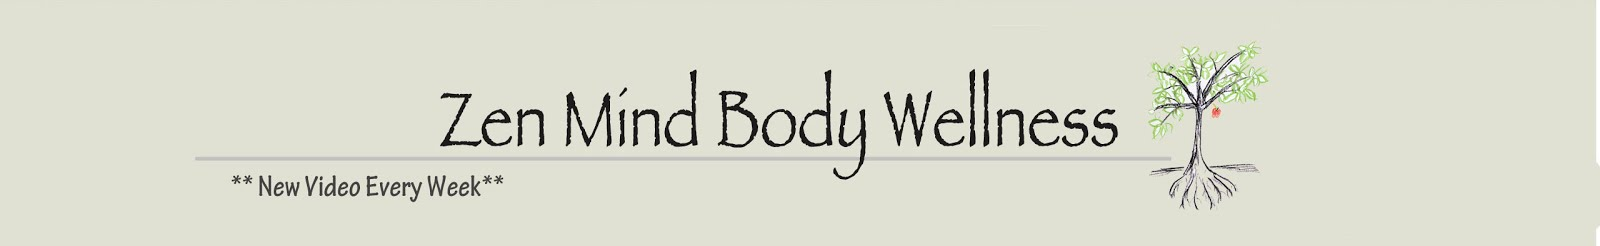 Zen Mind Body Wellness